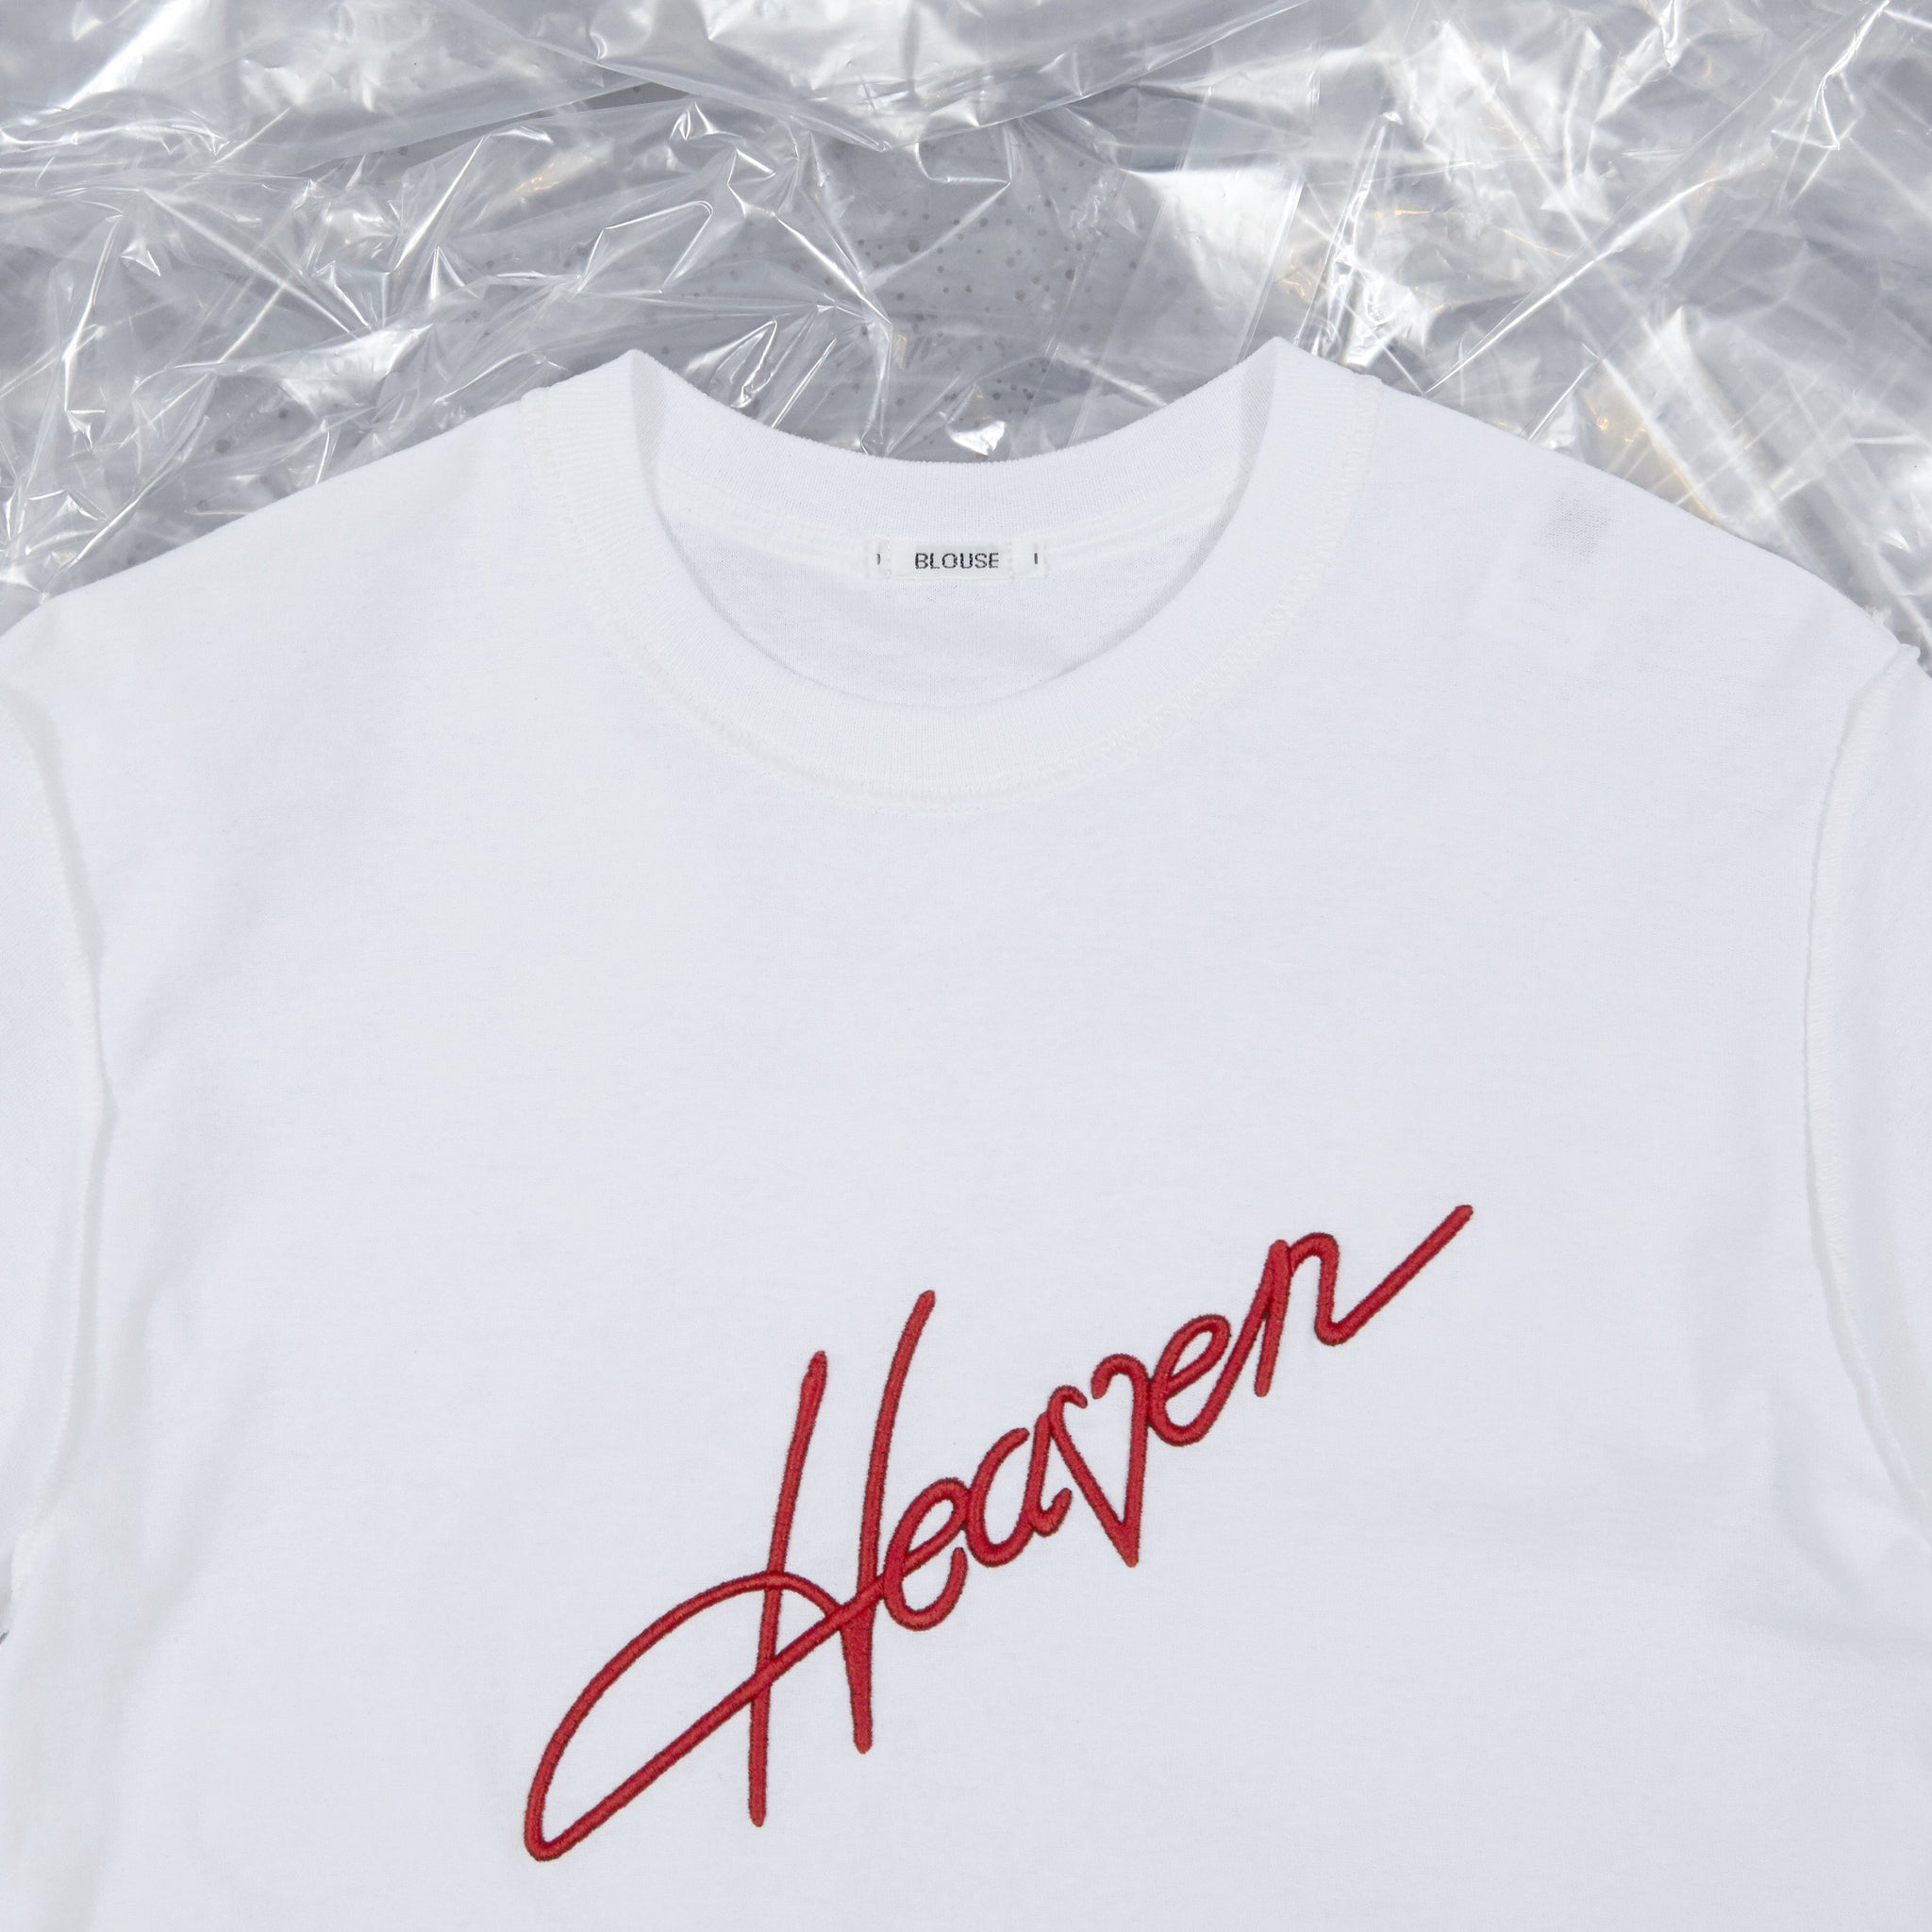 Heaven Tee White with Red Embroidery from BLOUSE by Geoffrey J Finch. Detail Image 1.